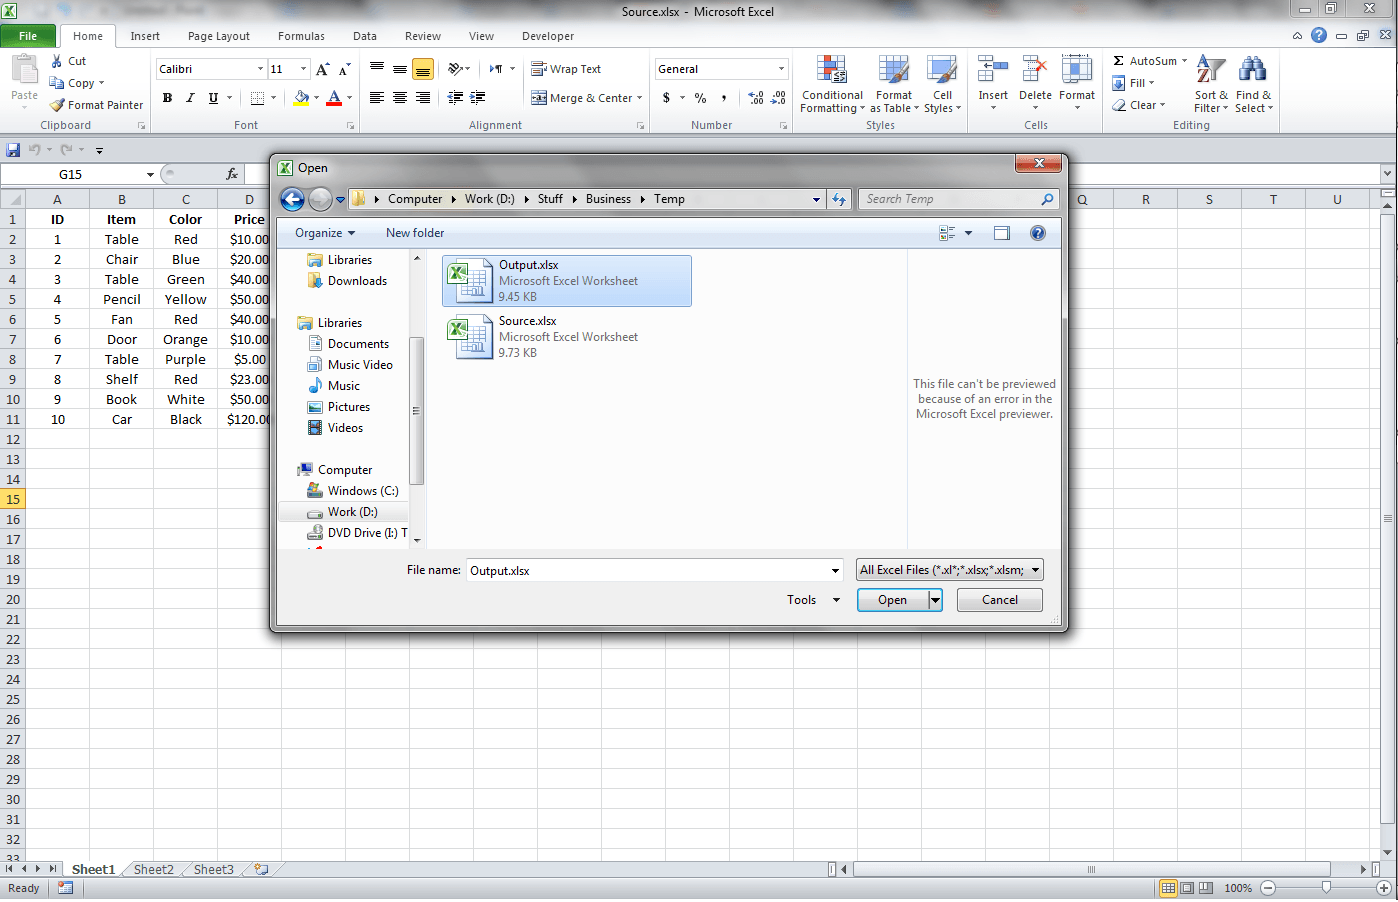 Excel, Getting Data From Another Workbook Through Links